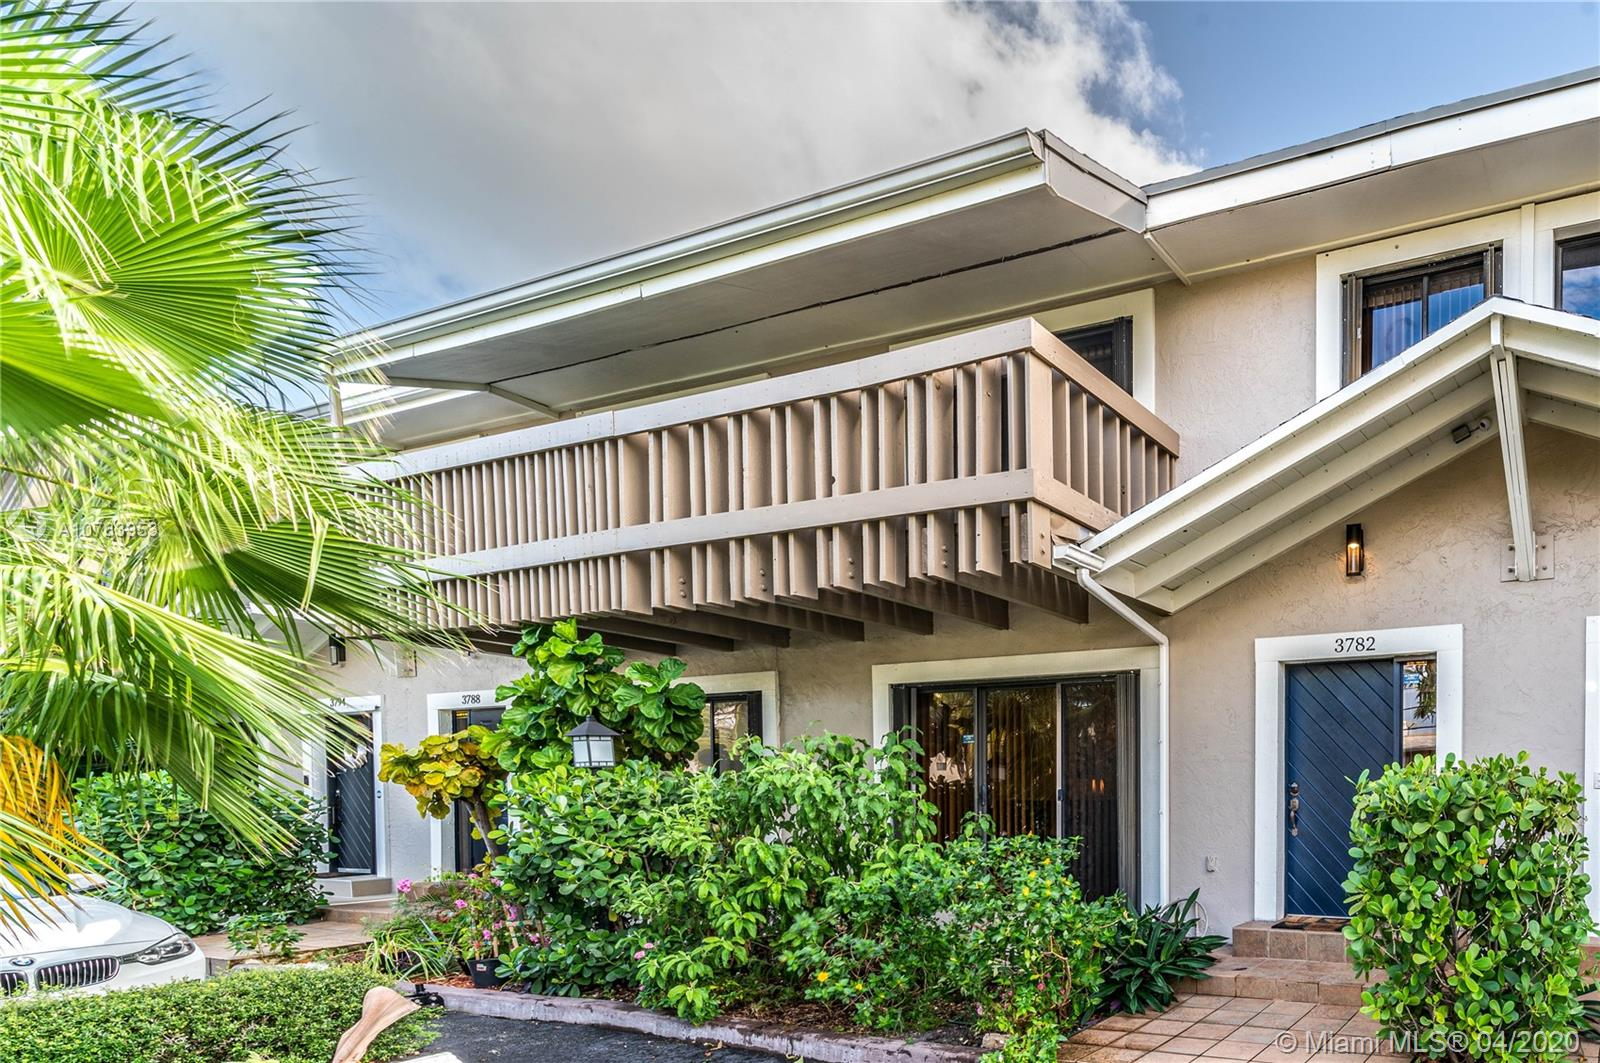 Beautiful and spacious waterfront townhome with 35 ft dock directly behind the property and almost 2,000 sq ft of living space. Access the Intracoastal and the ocean with no bridges, located only minutes away from the intracoastal waterway and 3 miles North of Haulover Inlet in N. Miami.